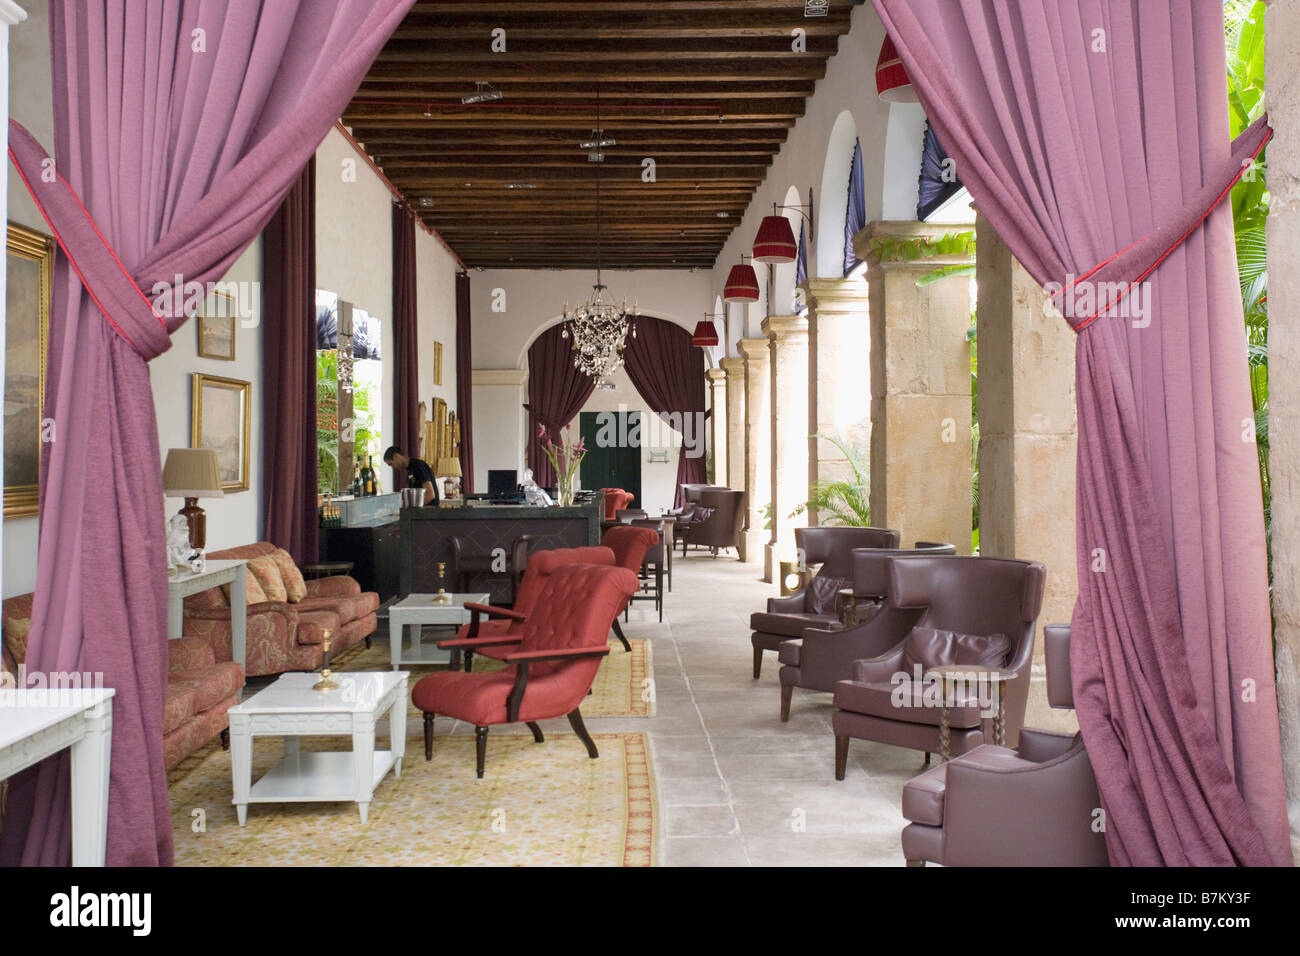 Pink Curtains And Comfy Chairs In Lounge On Veranda Of Hotel In Stock Photo Alamy